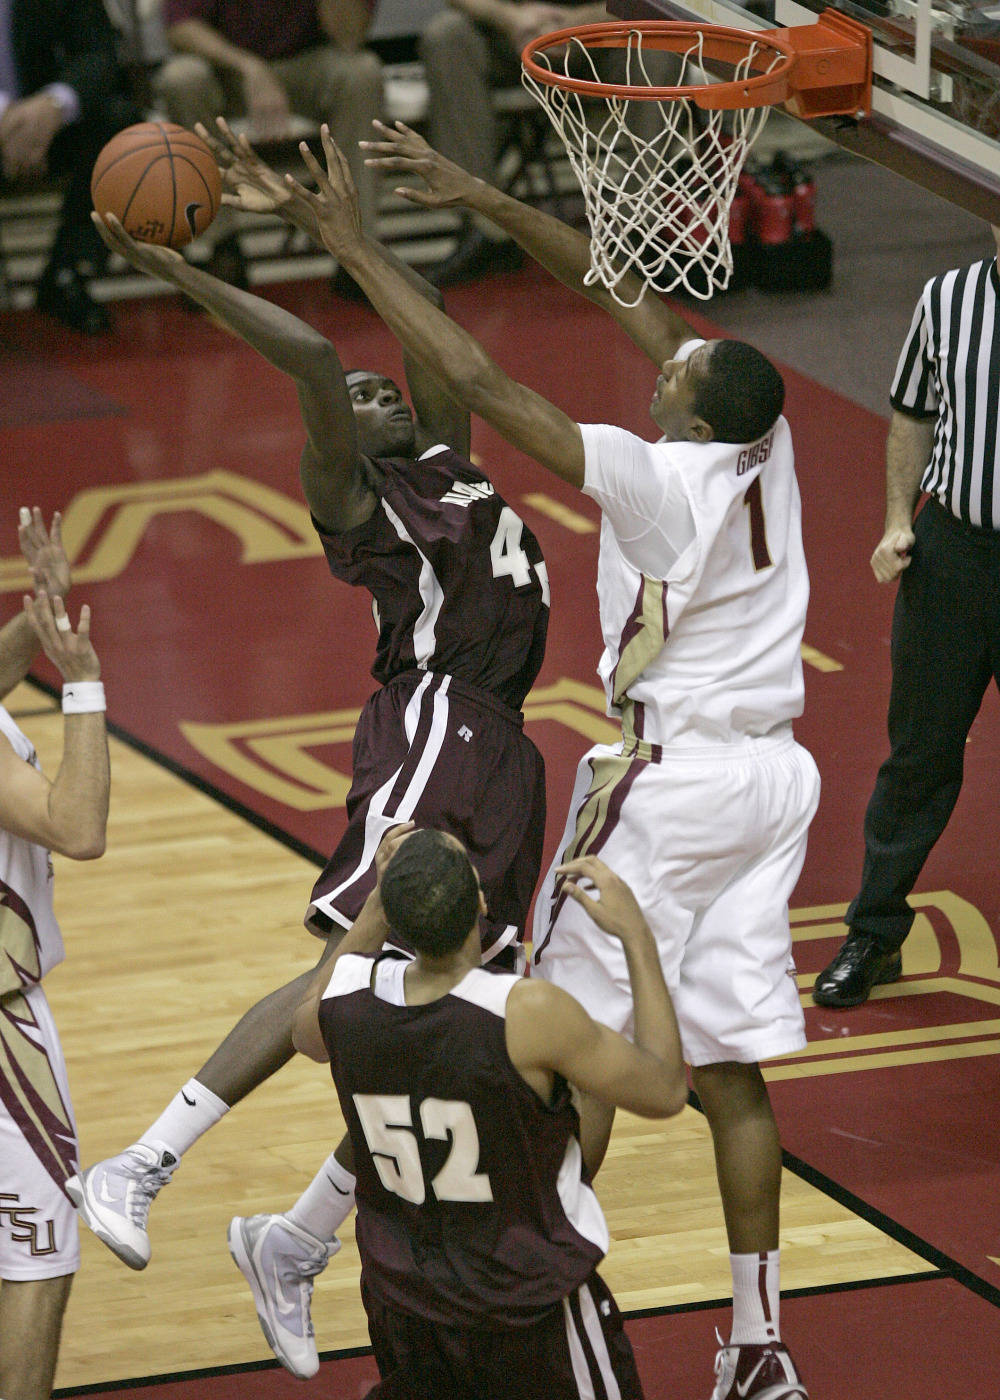 Alabama A&M's Bo Amusa tries to get a shot off against Florida State's Xavier Gibson in the first half of an NCAA college basketball game Thursday, Dec. 31, 2009, in Tallahassee, Fla. (AP Photo/Steve Cannon)